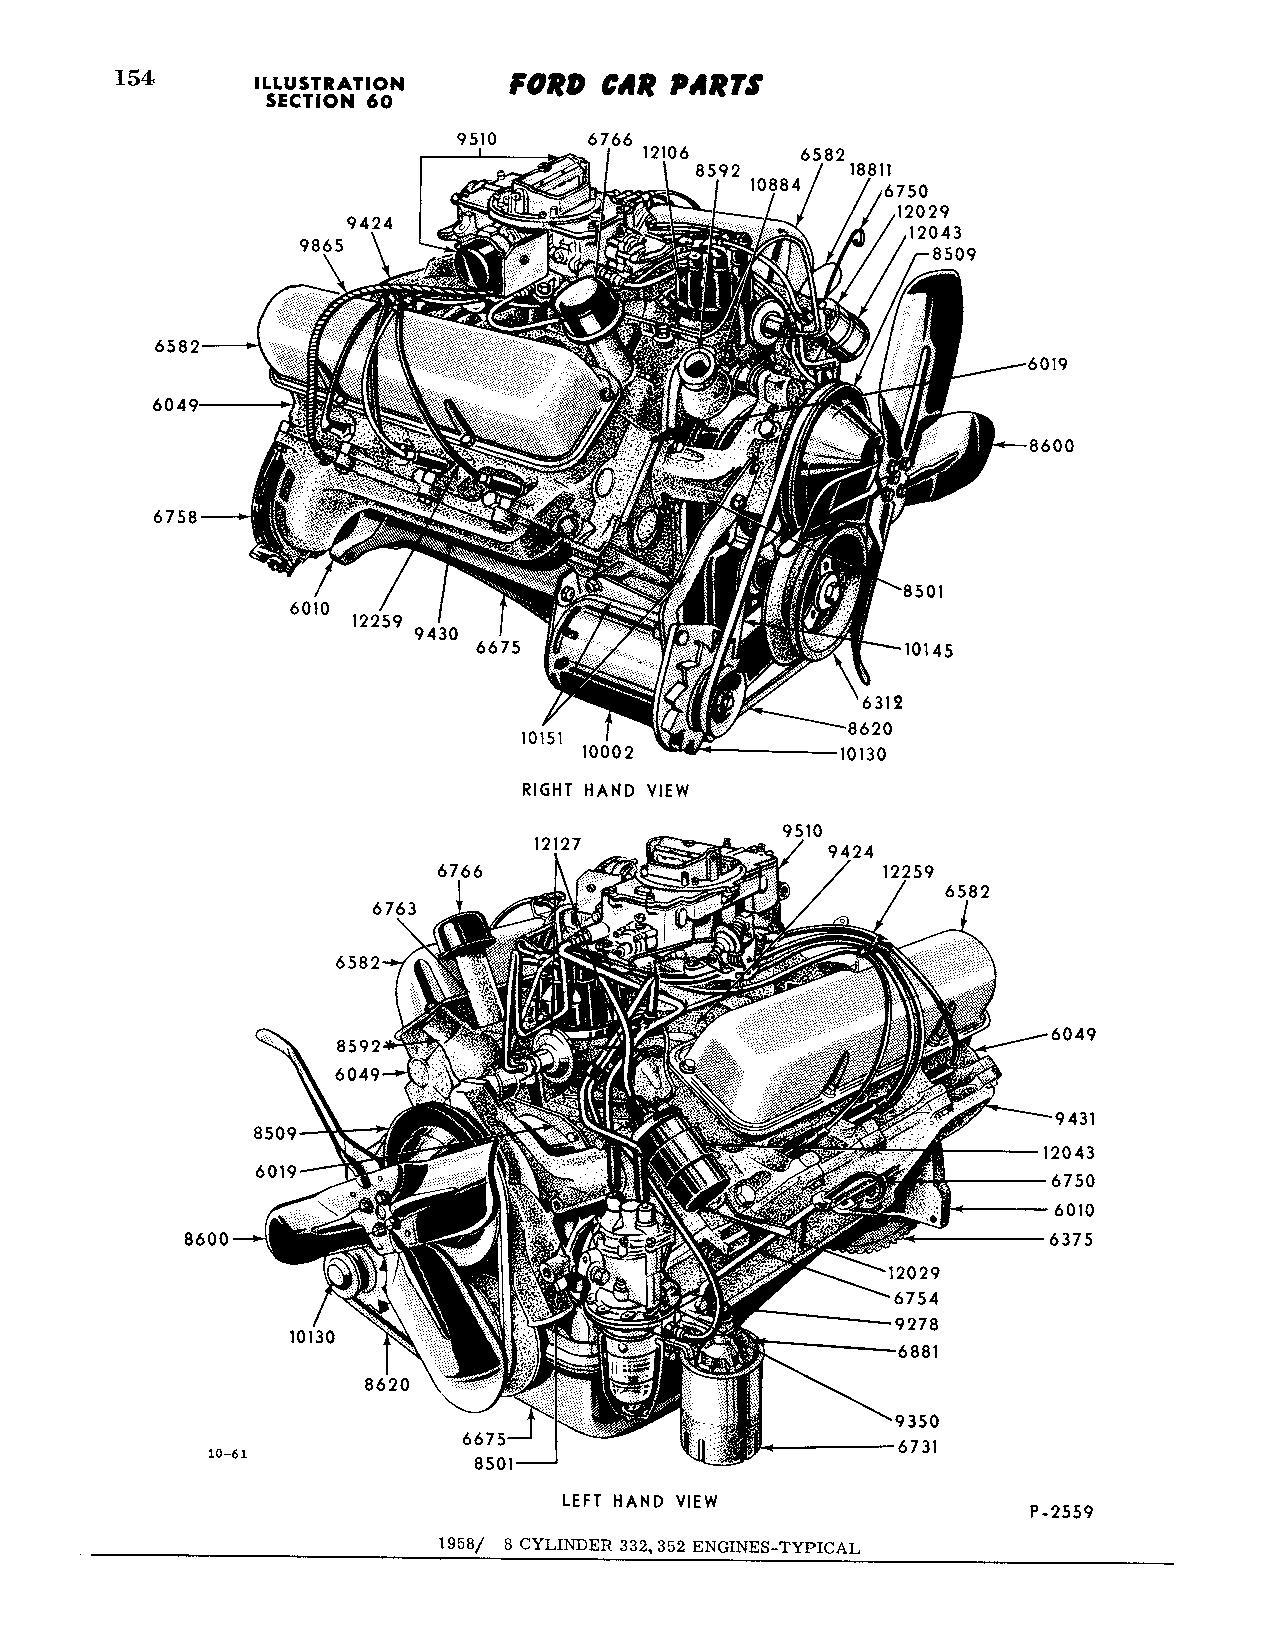 Intake Manifold Options For 390